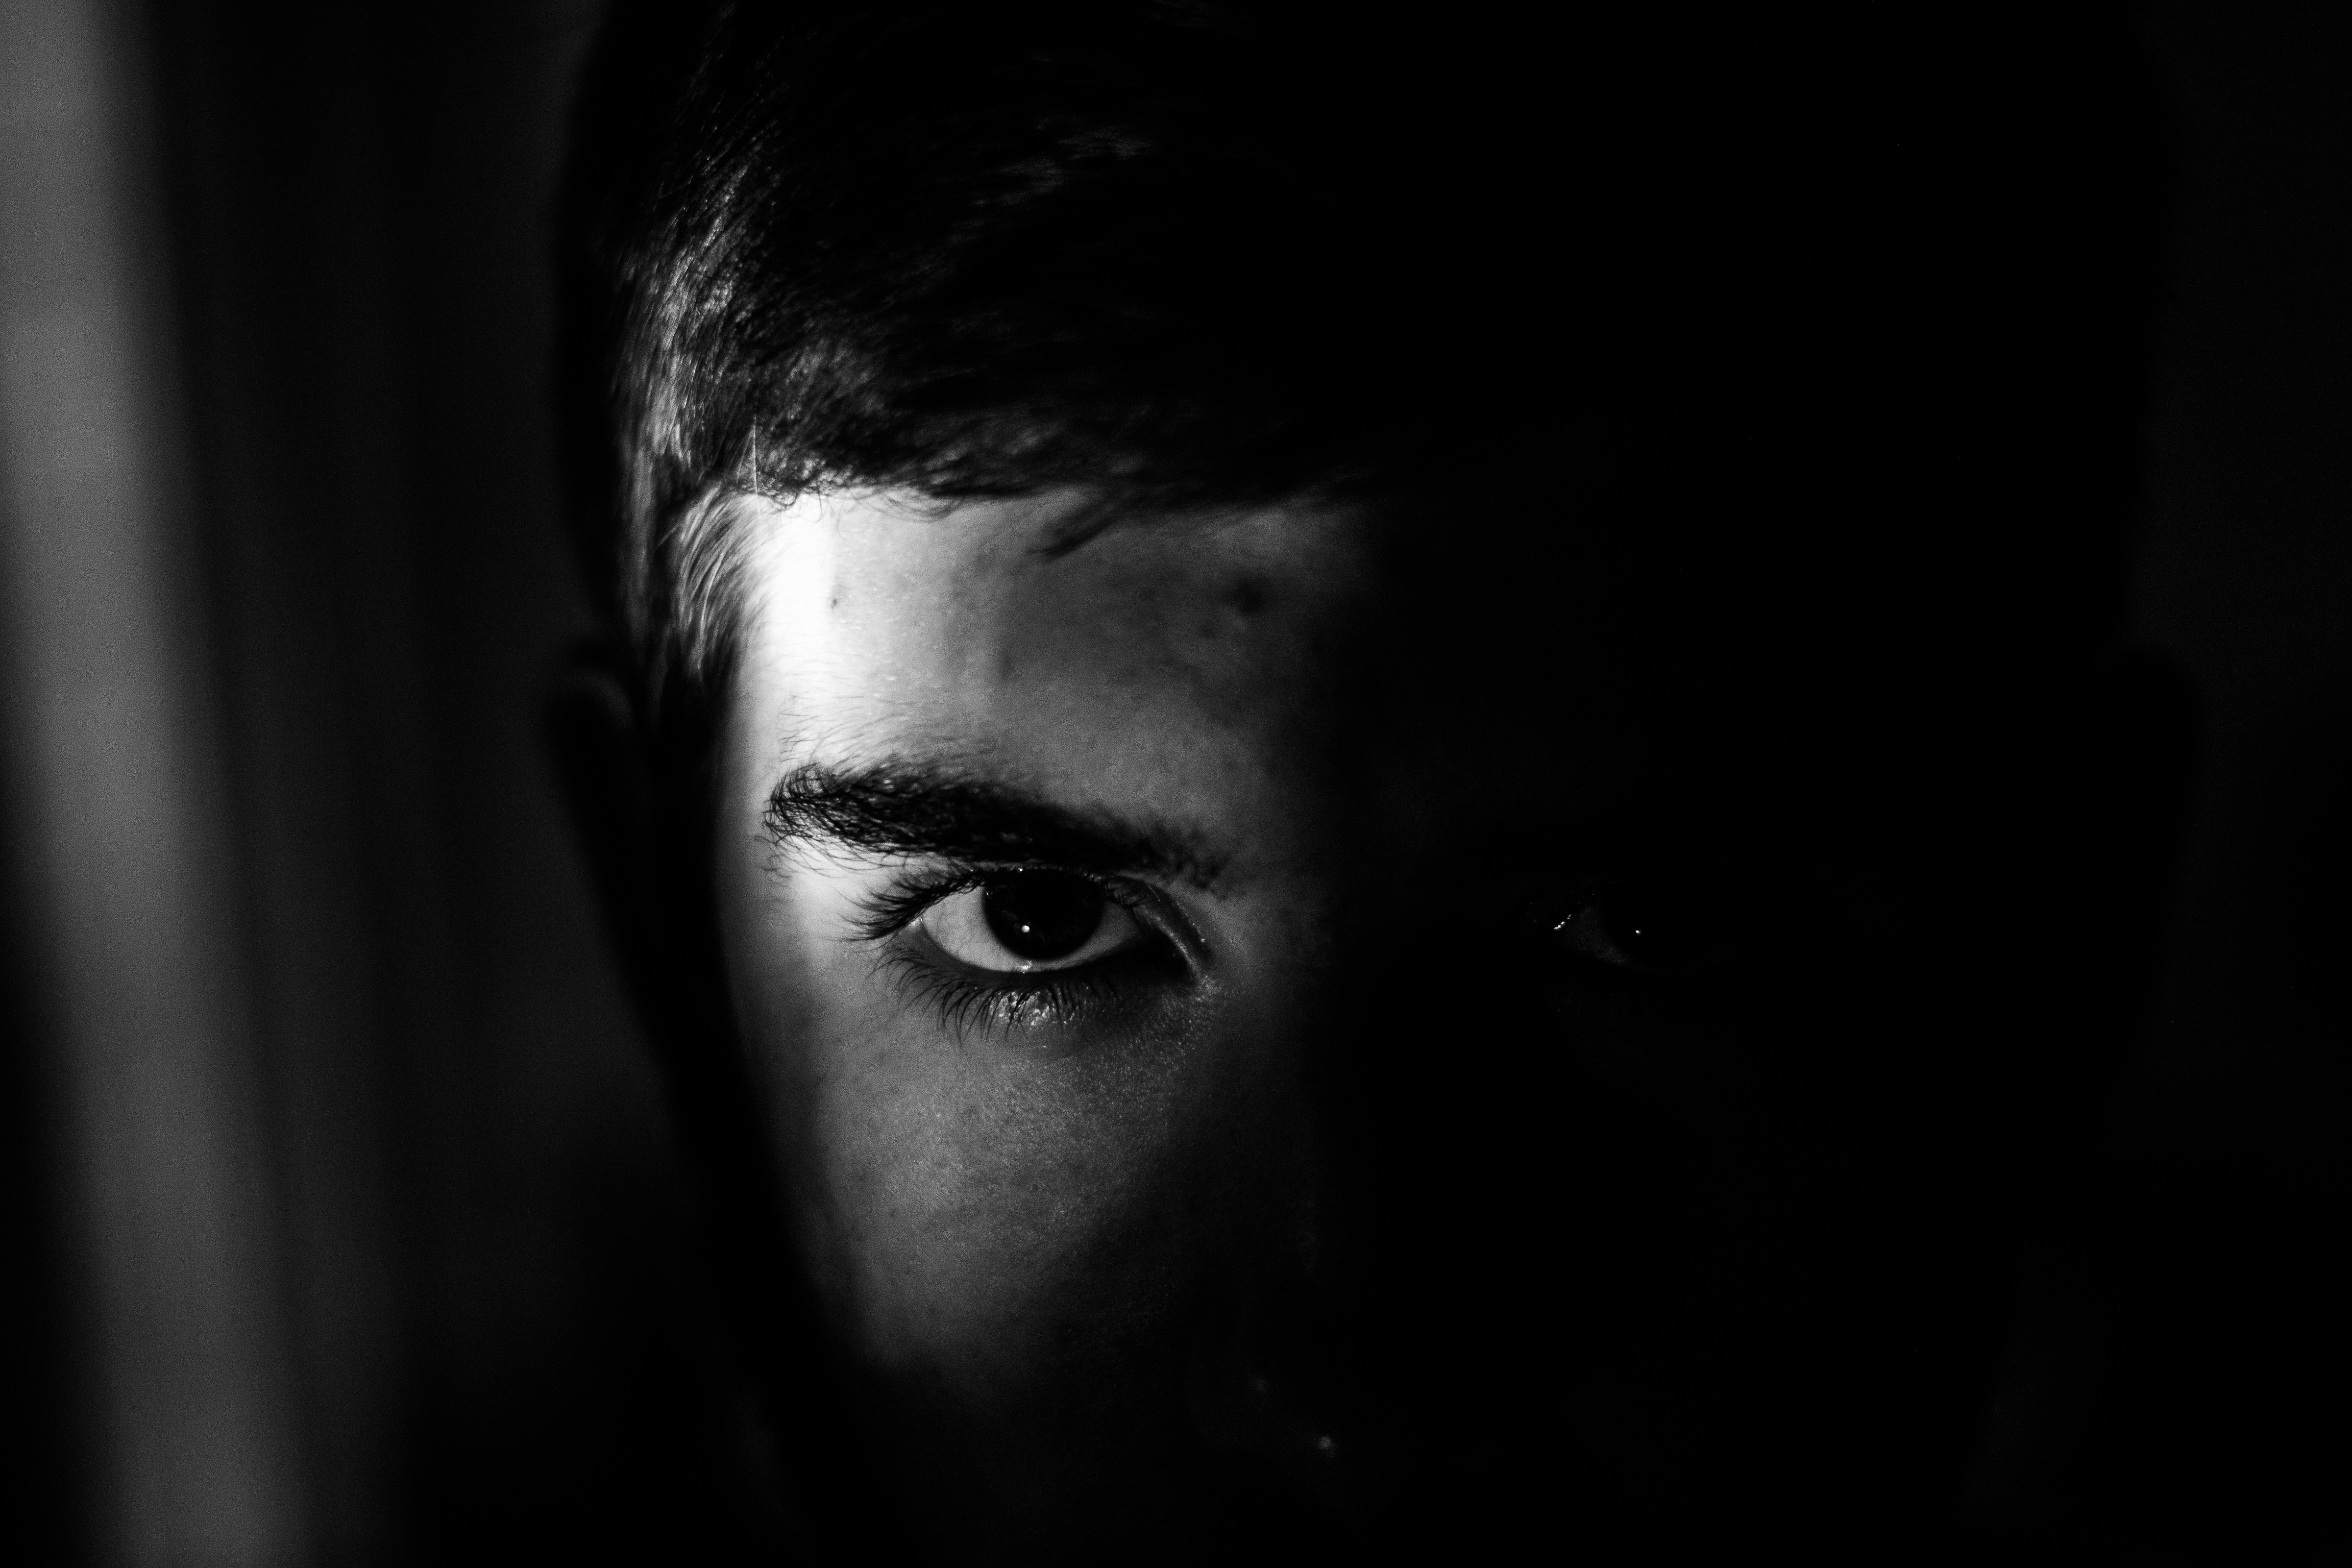 Photograph Submission For Emotion Anger 2013 Contest